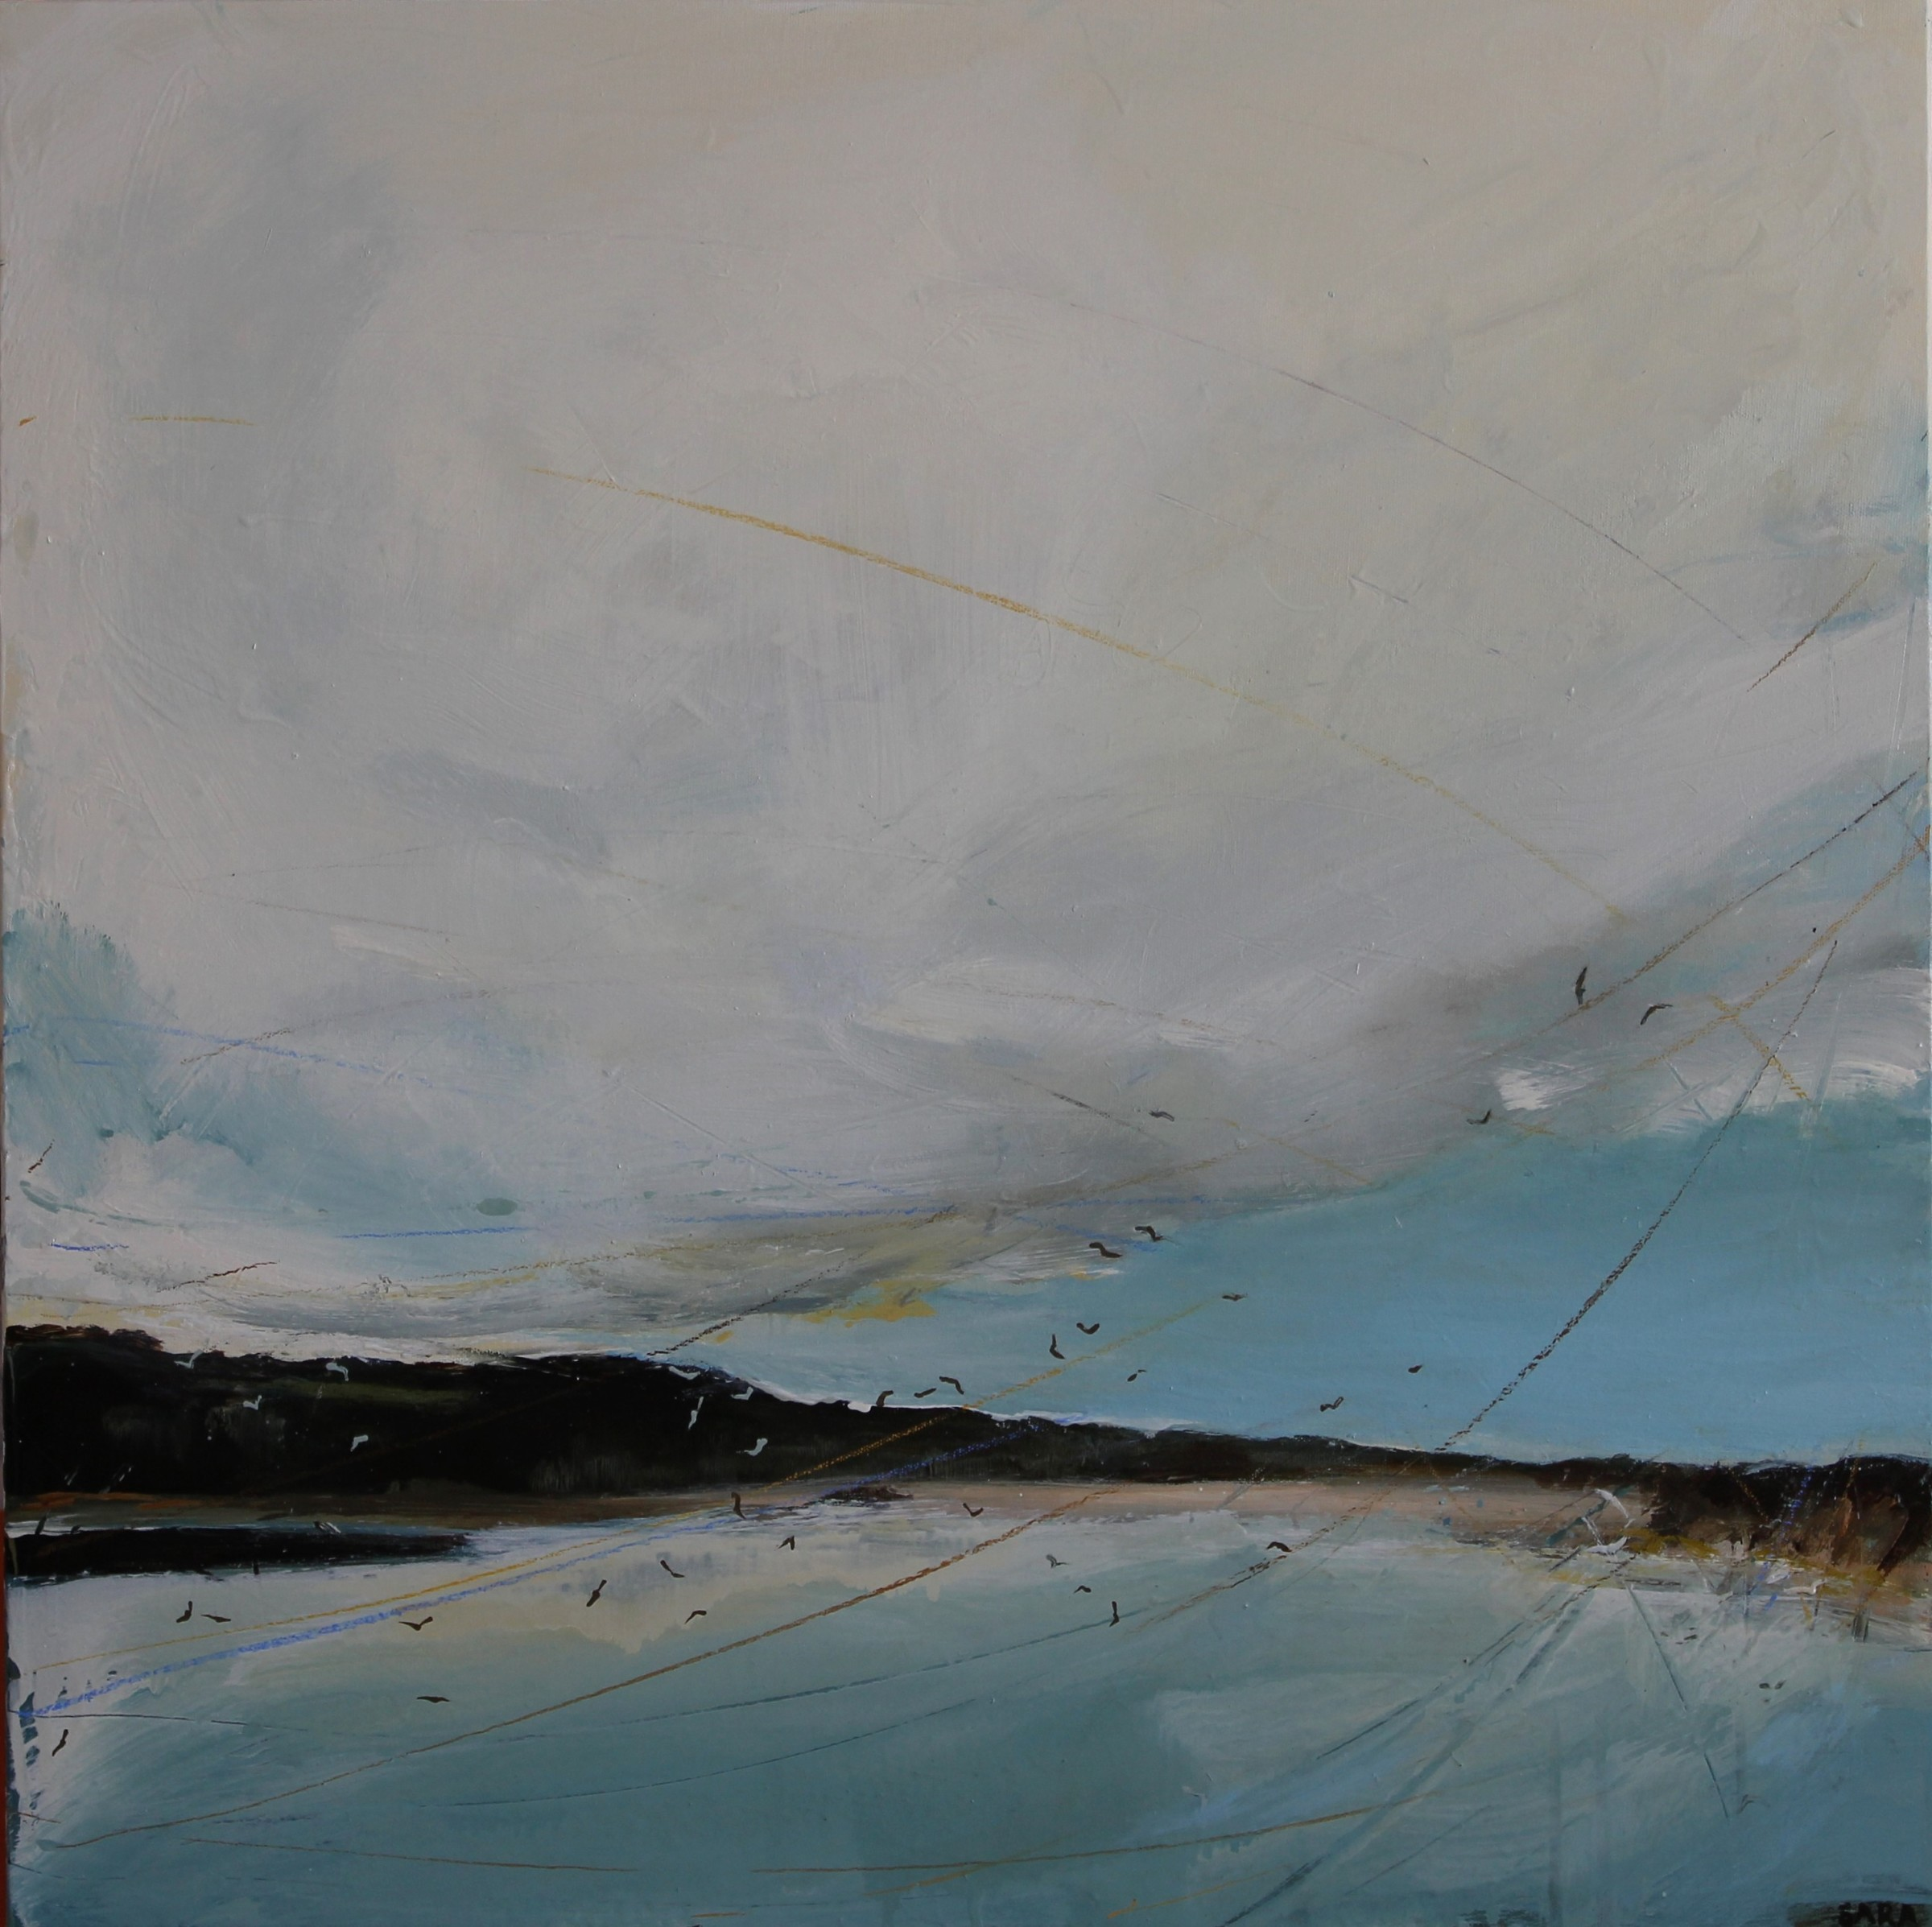 "<span class=""link fancybox-details-link""><a href=""/artists/159-sara-dudman-rwa/works/6557-sara-dudman-rwa-black-backed-gulls-old-town-st-mary-s-2019/"">View Detail Page</a></span><div class=""artist""><strong>Sara Dudman RWA</strong></div> <div class=""title""><em>Black Backed Gulls (Old Town, St Mary's)</em>, 2019</div> <div class=""medium"">Oil on canvas</div> <div class=""dimensions"">h. 81 x w. 81 cm</div><div class=""price"">£1,300.00</div><div class=""copyright_line"">Ownart: £130 x 10 Months, 0 % APR</div>"